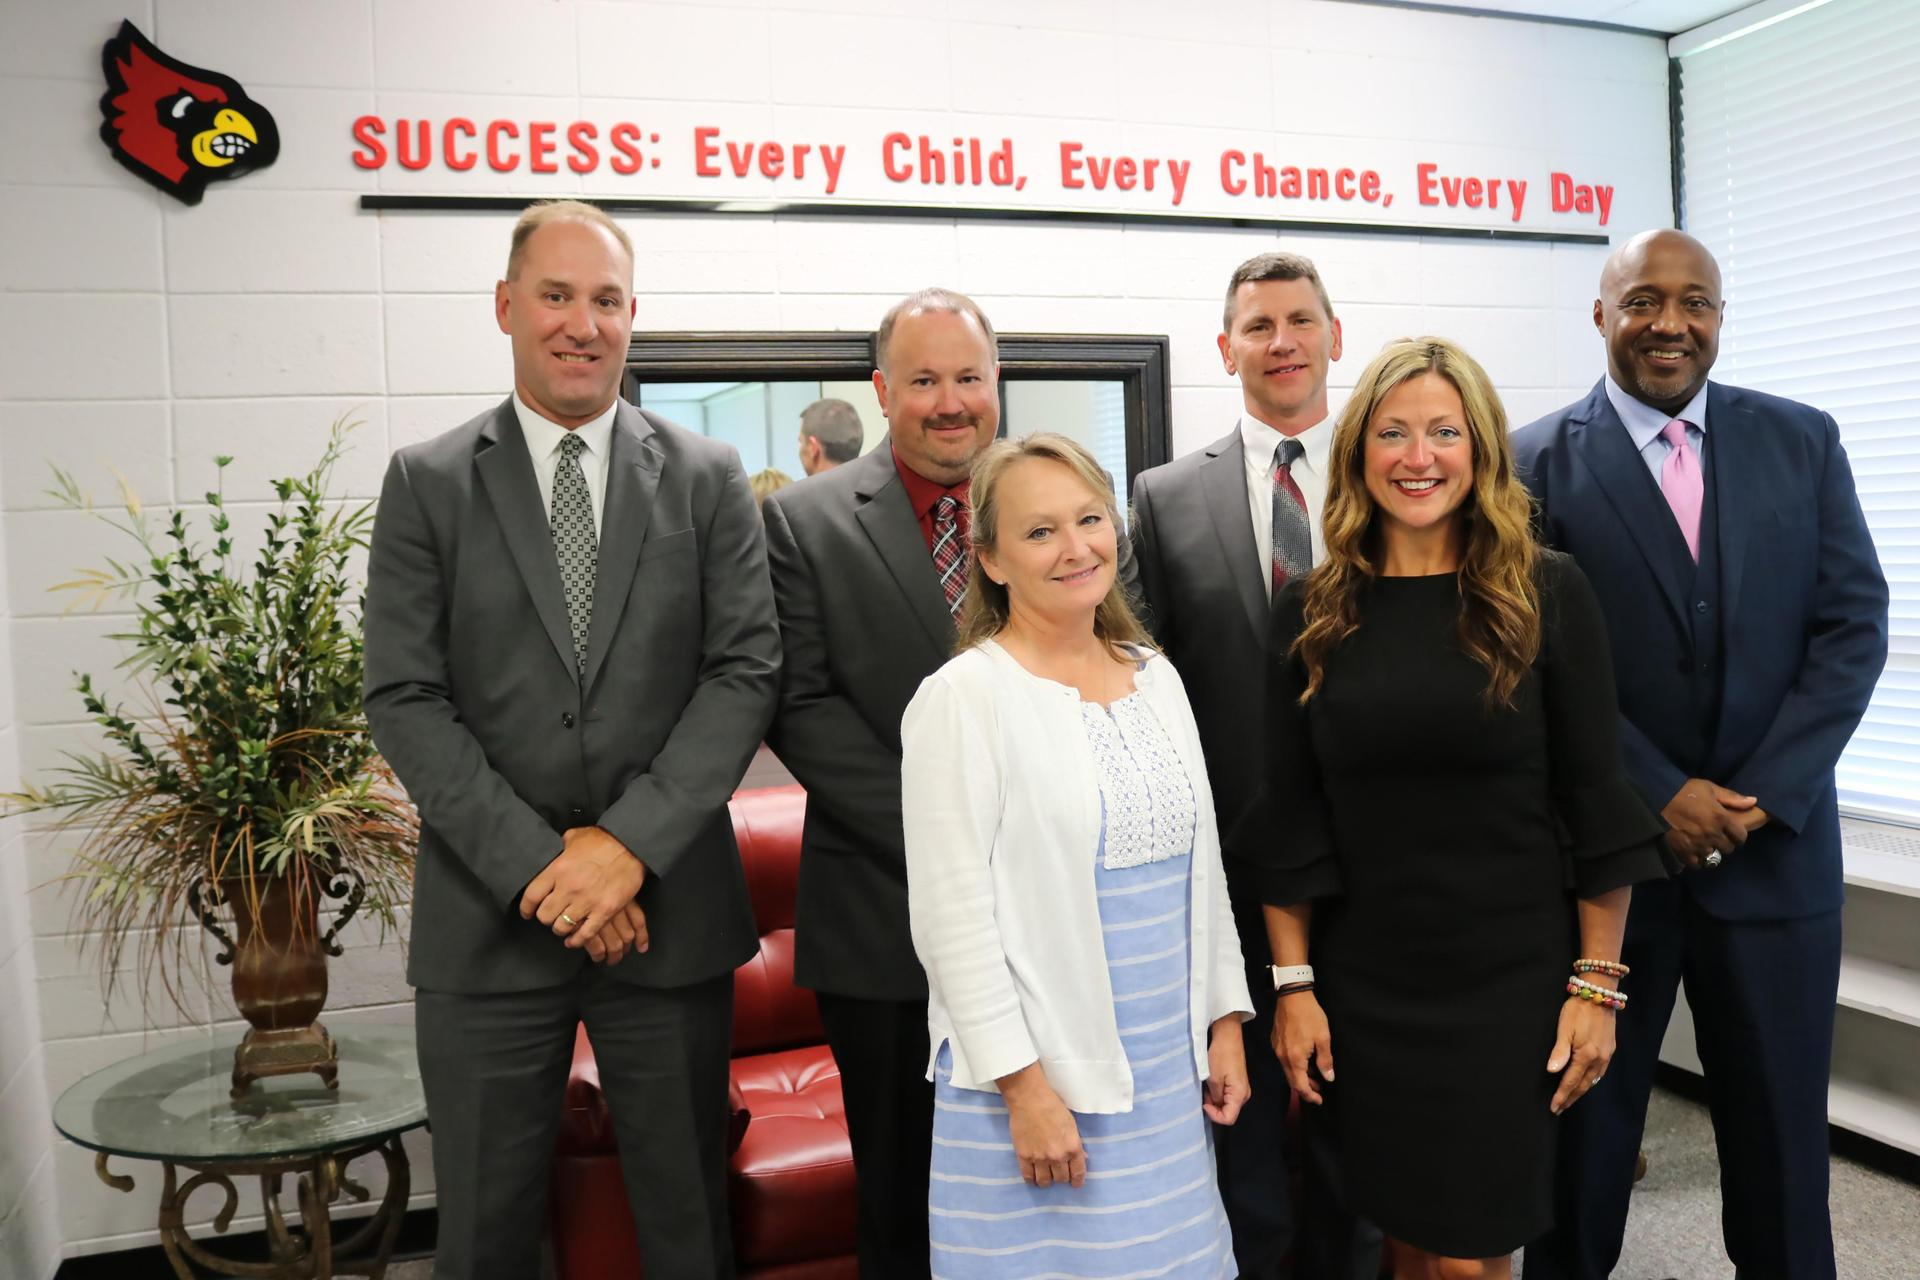 Picture of all Board Members standing in front of district moto 'Success: Every Child, Every Chance, Every Day'